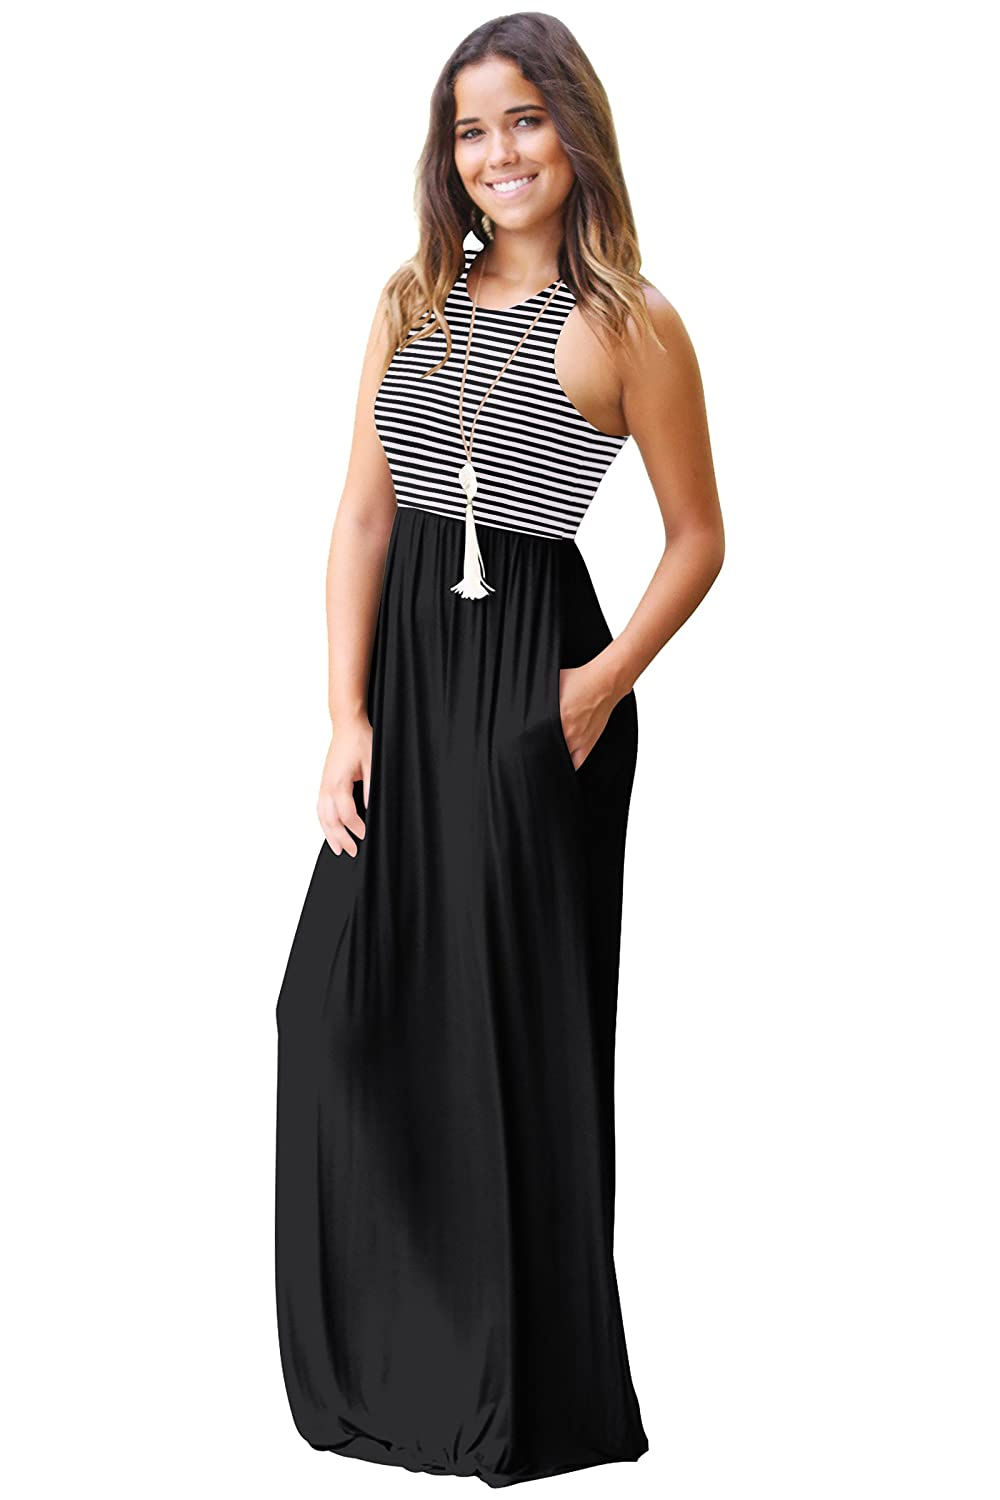 41ee8da123 Mintsnow Women's Summer Sleeveless Dresses Striped Casual Long Maxi Dress  with Pockets S at Amazon Women's Clothing store: